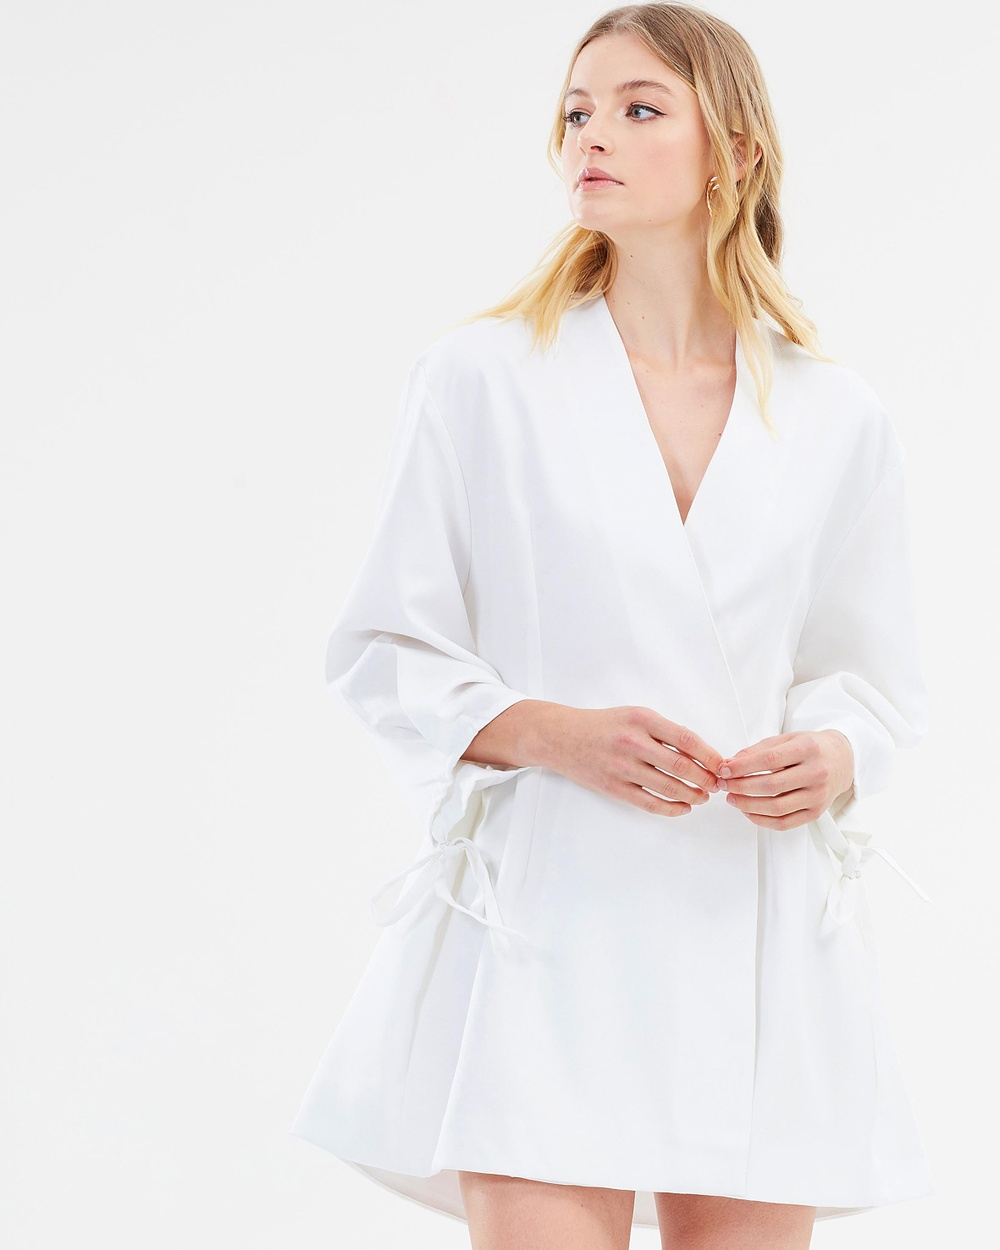 Maurie & Eve Lejano Jacket Dress Dresses Crisp White Lejano Jacket Dress